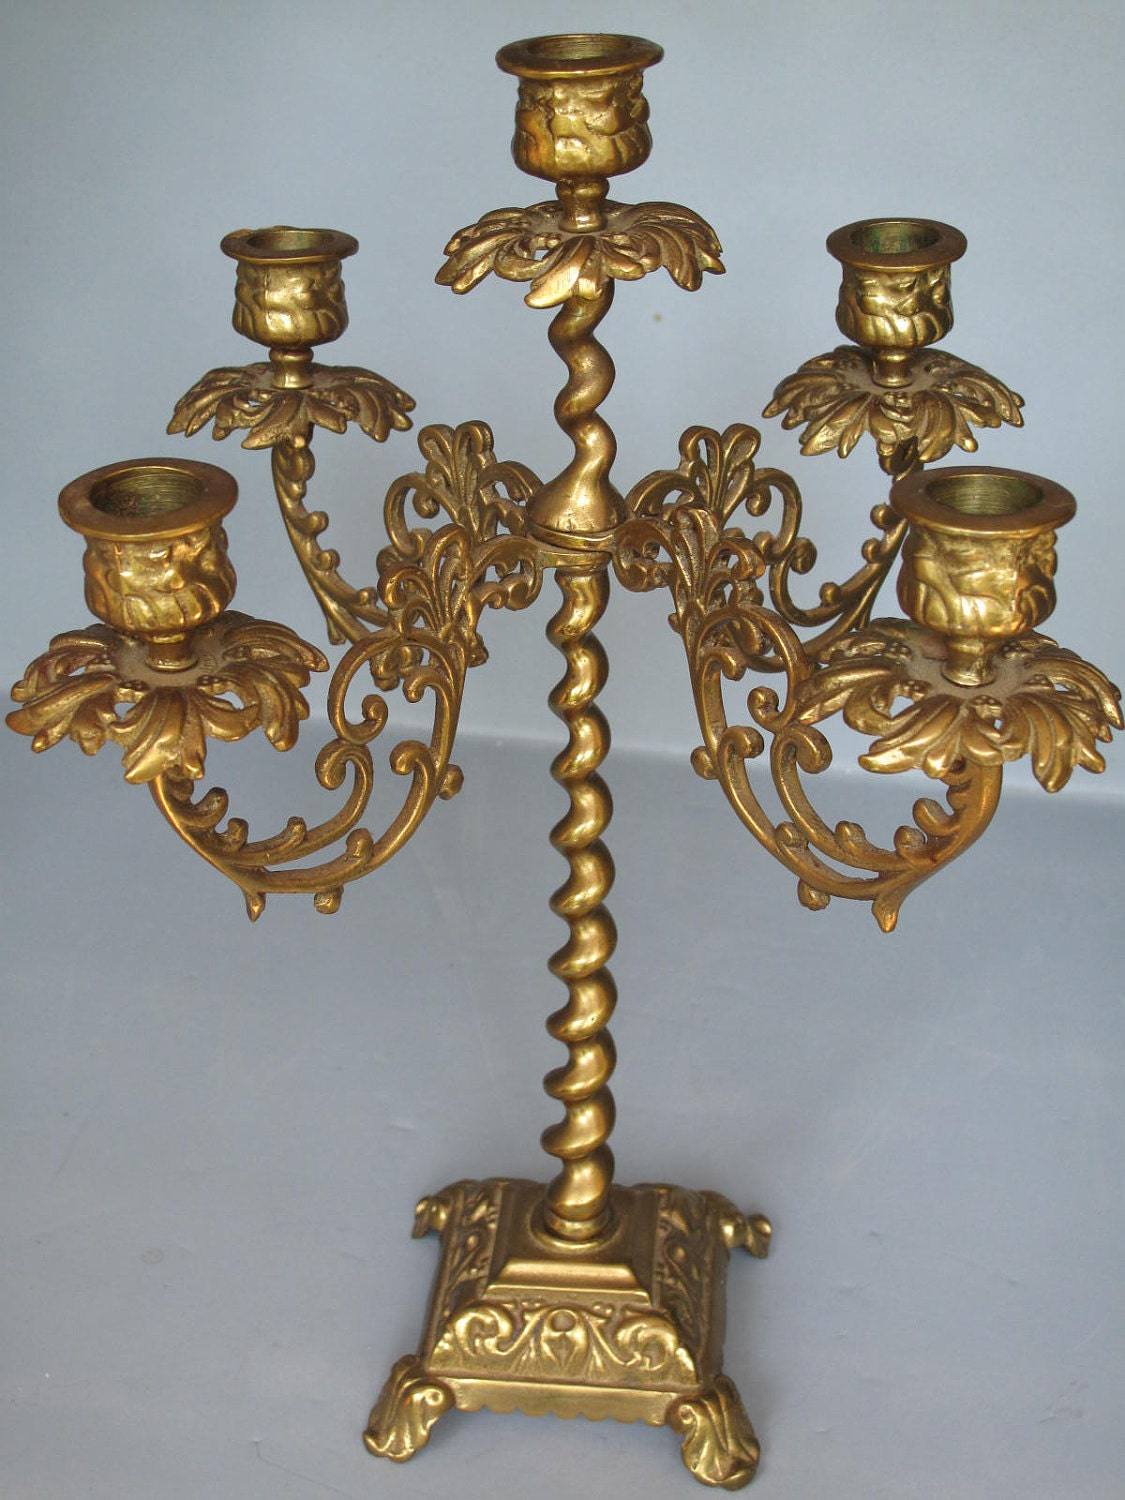 Vintage Brass Candelabra Ornate Solid Brass Candelabra With